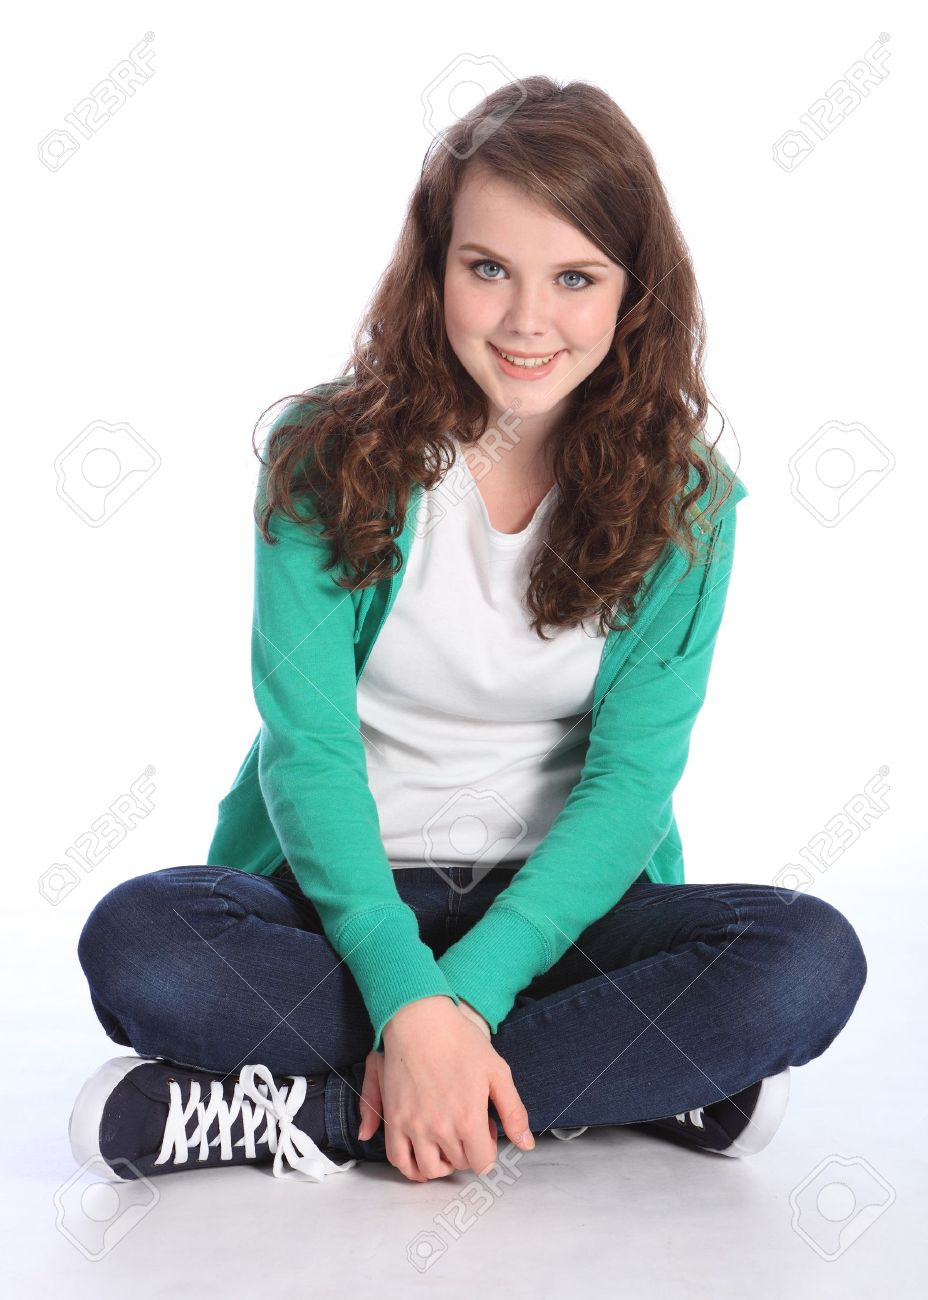 Sitting Cross Legged On Floor A Beautiful High School Teenager Girl With  Long Brown Hair Wearing